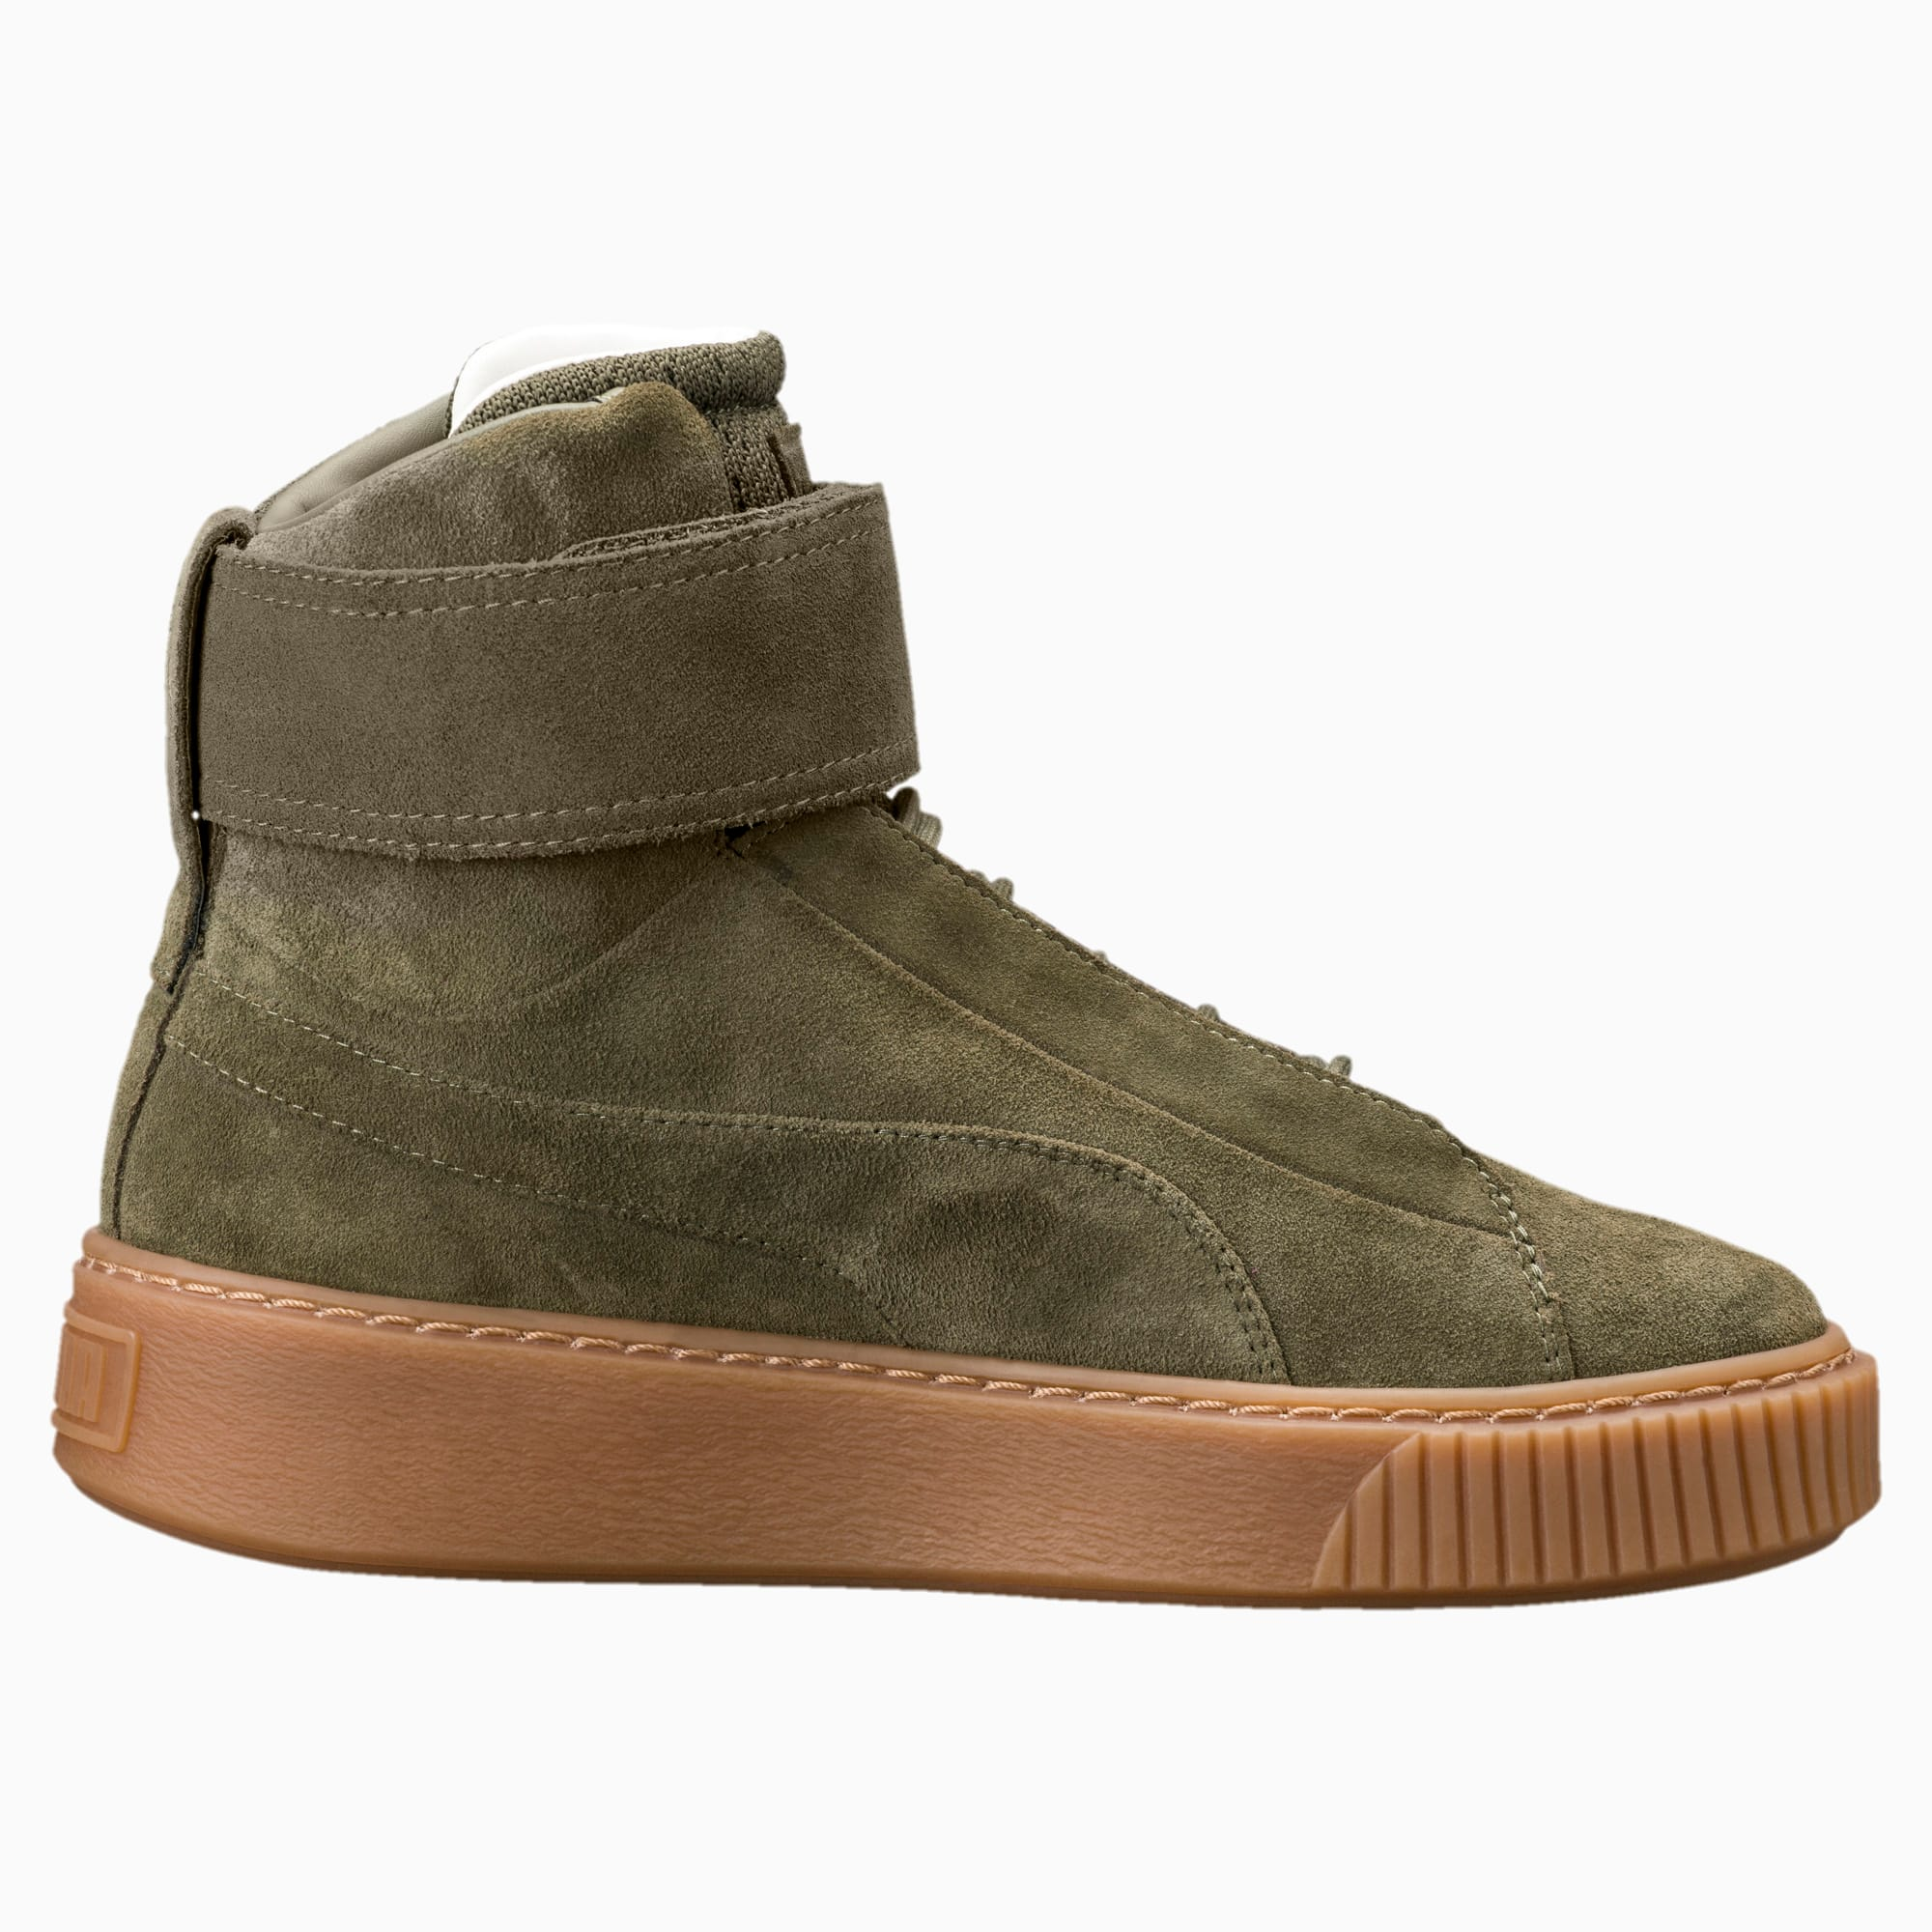 Platform Mid OW Women's High Top Sneakers